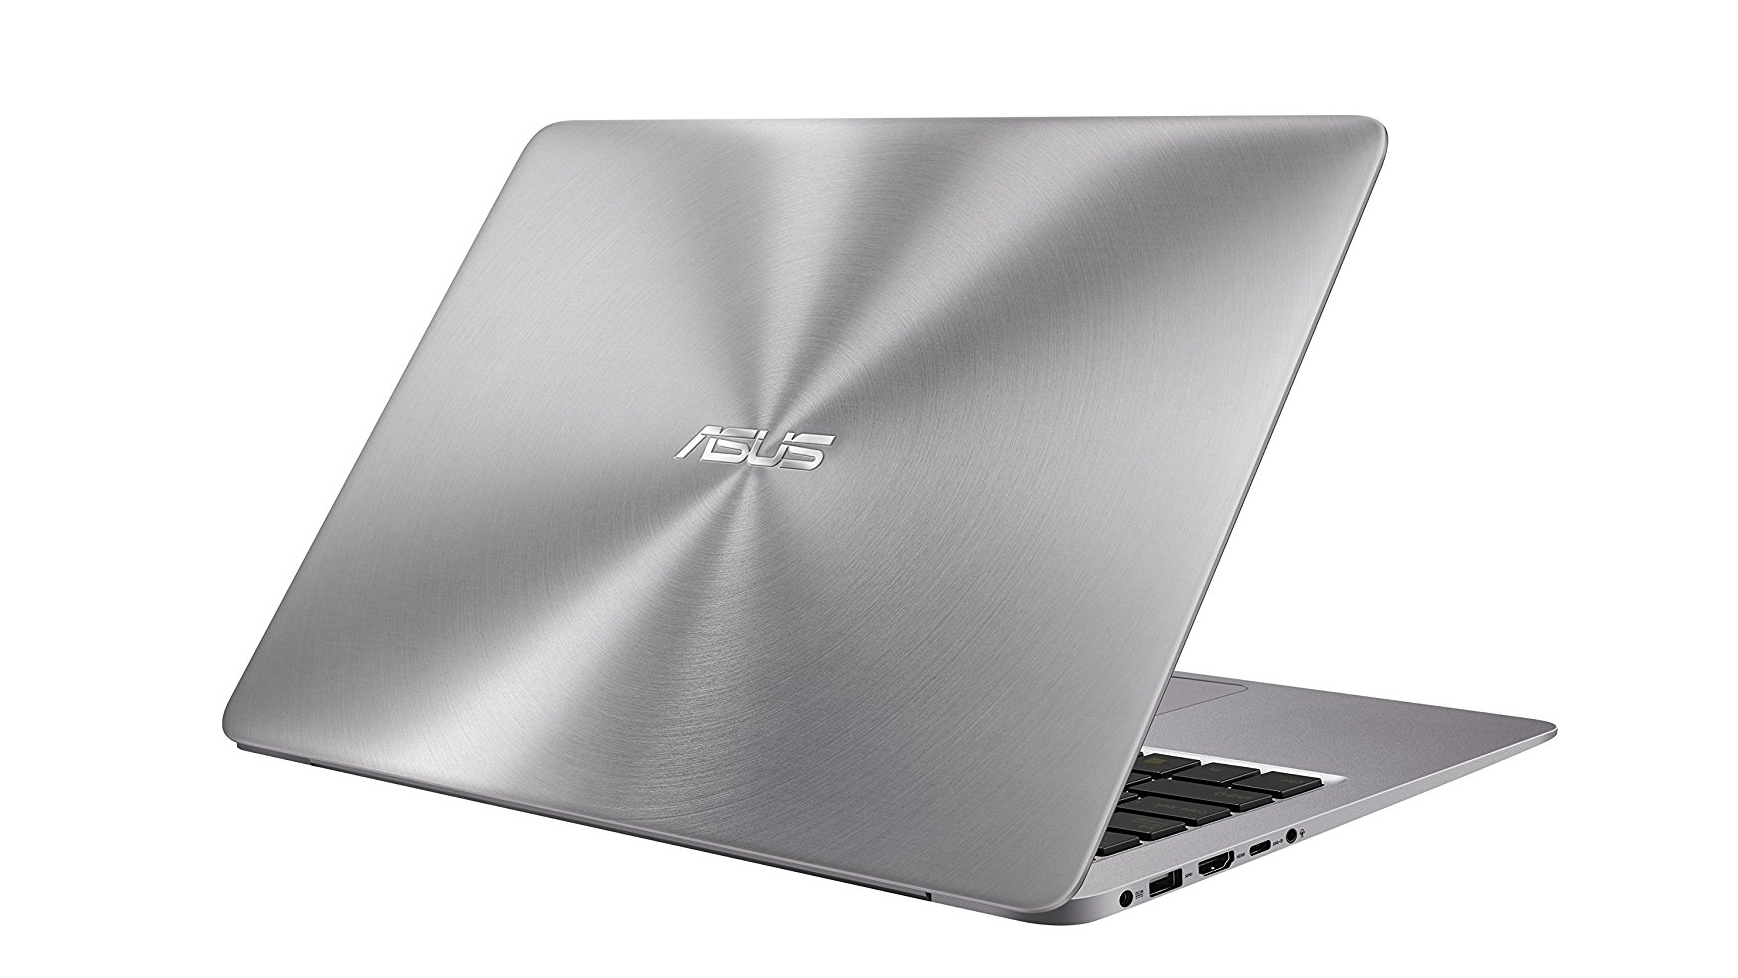 Best Asus laptops 2019: the top Asus laptops we've tested